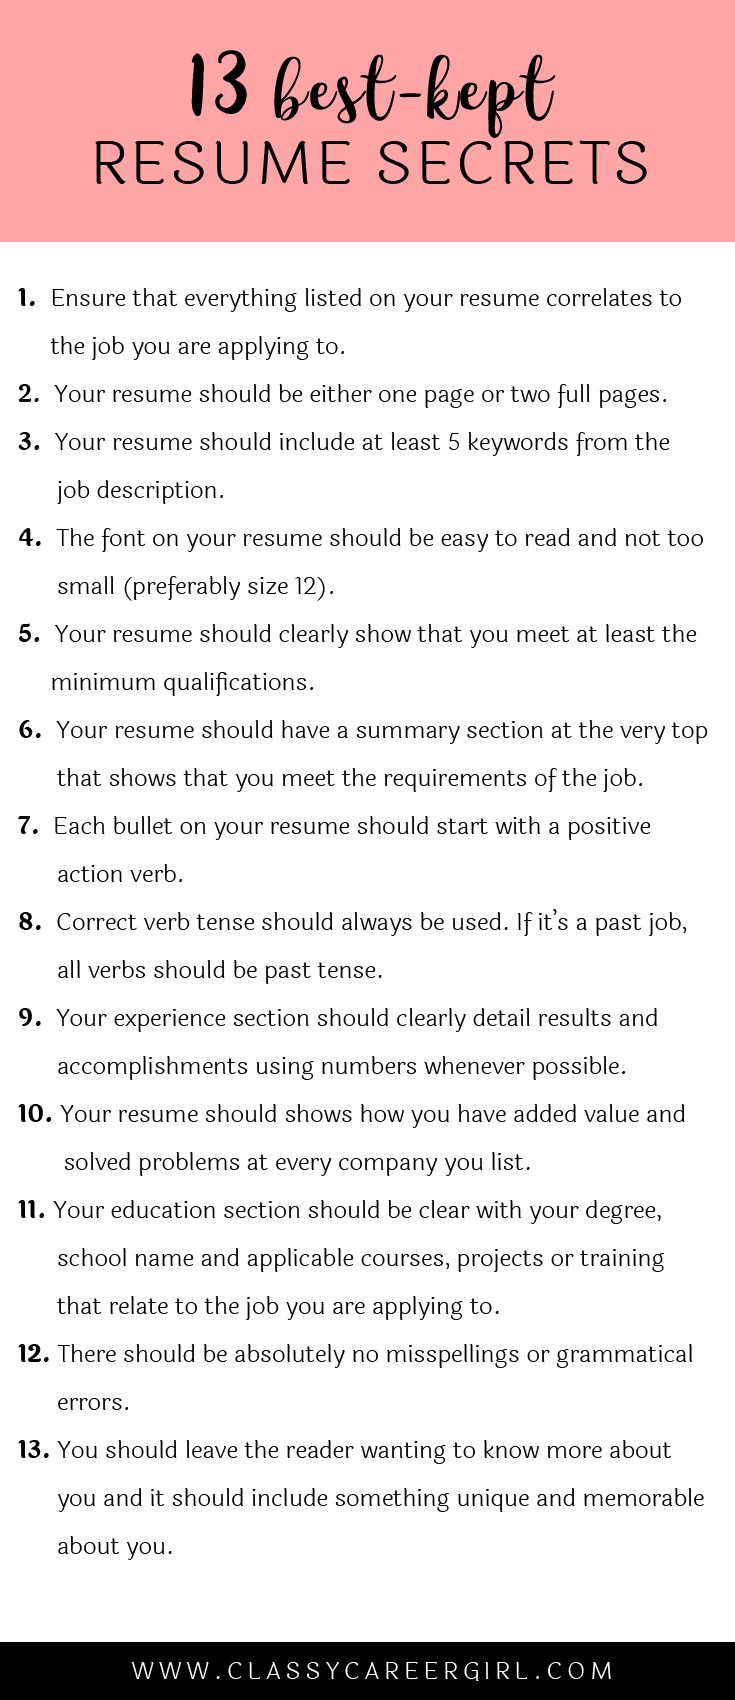 Opposenewapstandardsus  Splendid  Ideas About Resume On Pinterest  Cv Format Resume Cv And  With Remarkable Some Hiring Managers Will Toss Your Resume Out If You Dont Know These  With Charming Practice Manager Resume Also Resume Goal In Addition Creative Resume Formats And How To Email Resume And Cover Letter As Well As Resume Templates On Microsoft Word Additionally Customer Service Duties For Resume From Pinterestcom With Opposenewapstandardsus  Remarkable  Ideas About Resume On Pinterest  Cv Format Resume Cv And  With Charming Some Hiring Managers Will Toss Your Resume Out If You Dont Know These  And Splendid Practice Manager Resume Also Resume Goal In Addition Creative Resume Formats From Pinterestcom